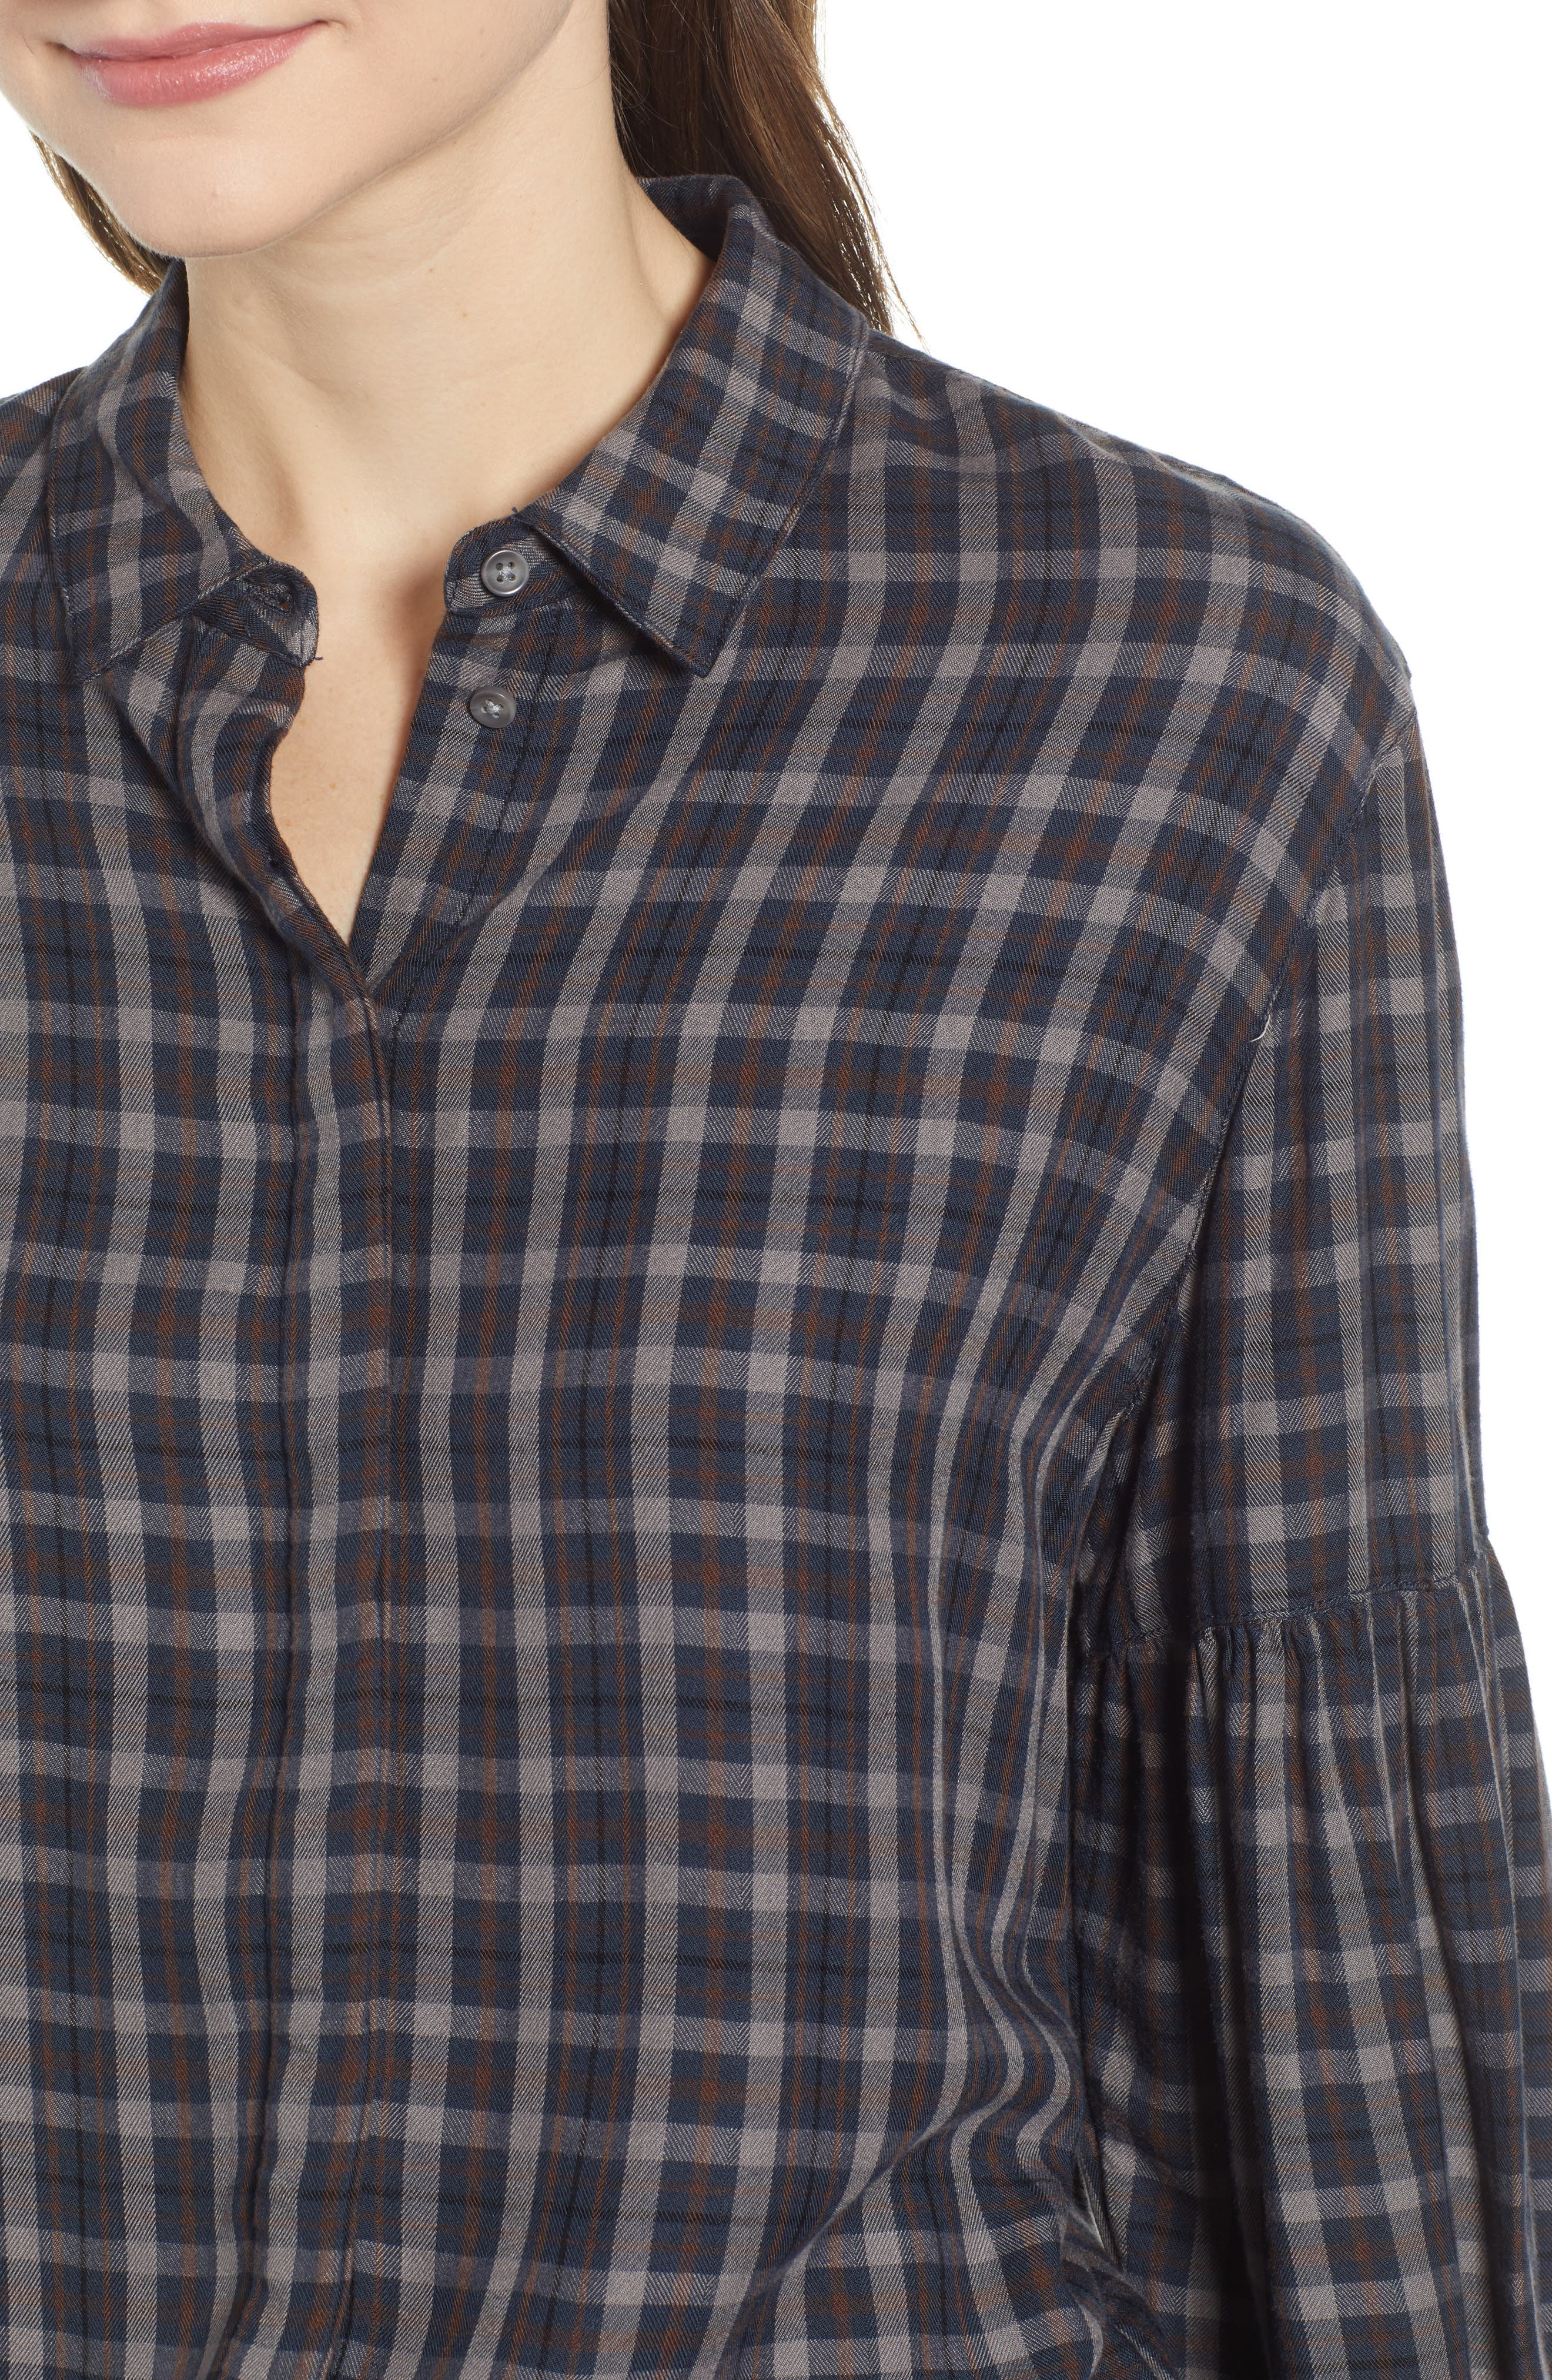 Puff Sleeve Boyfriend Shirt,                             Alternate thumbnail 4, color,                             BURGNDY RUSSET OPEN GLEN PLAID